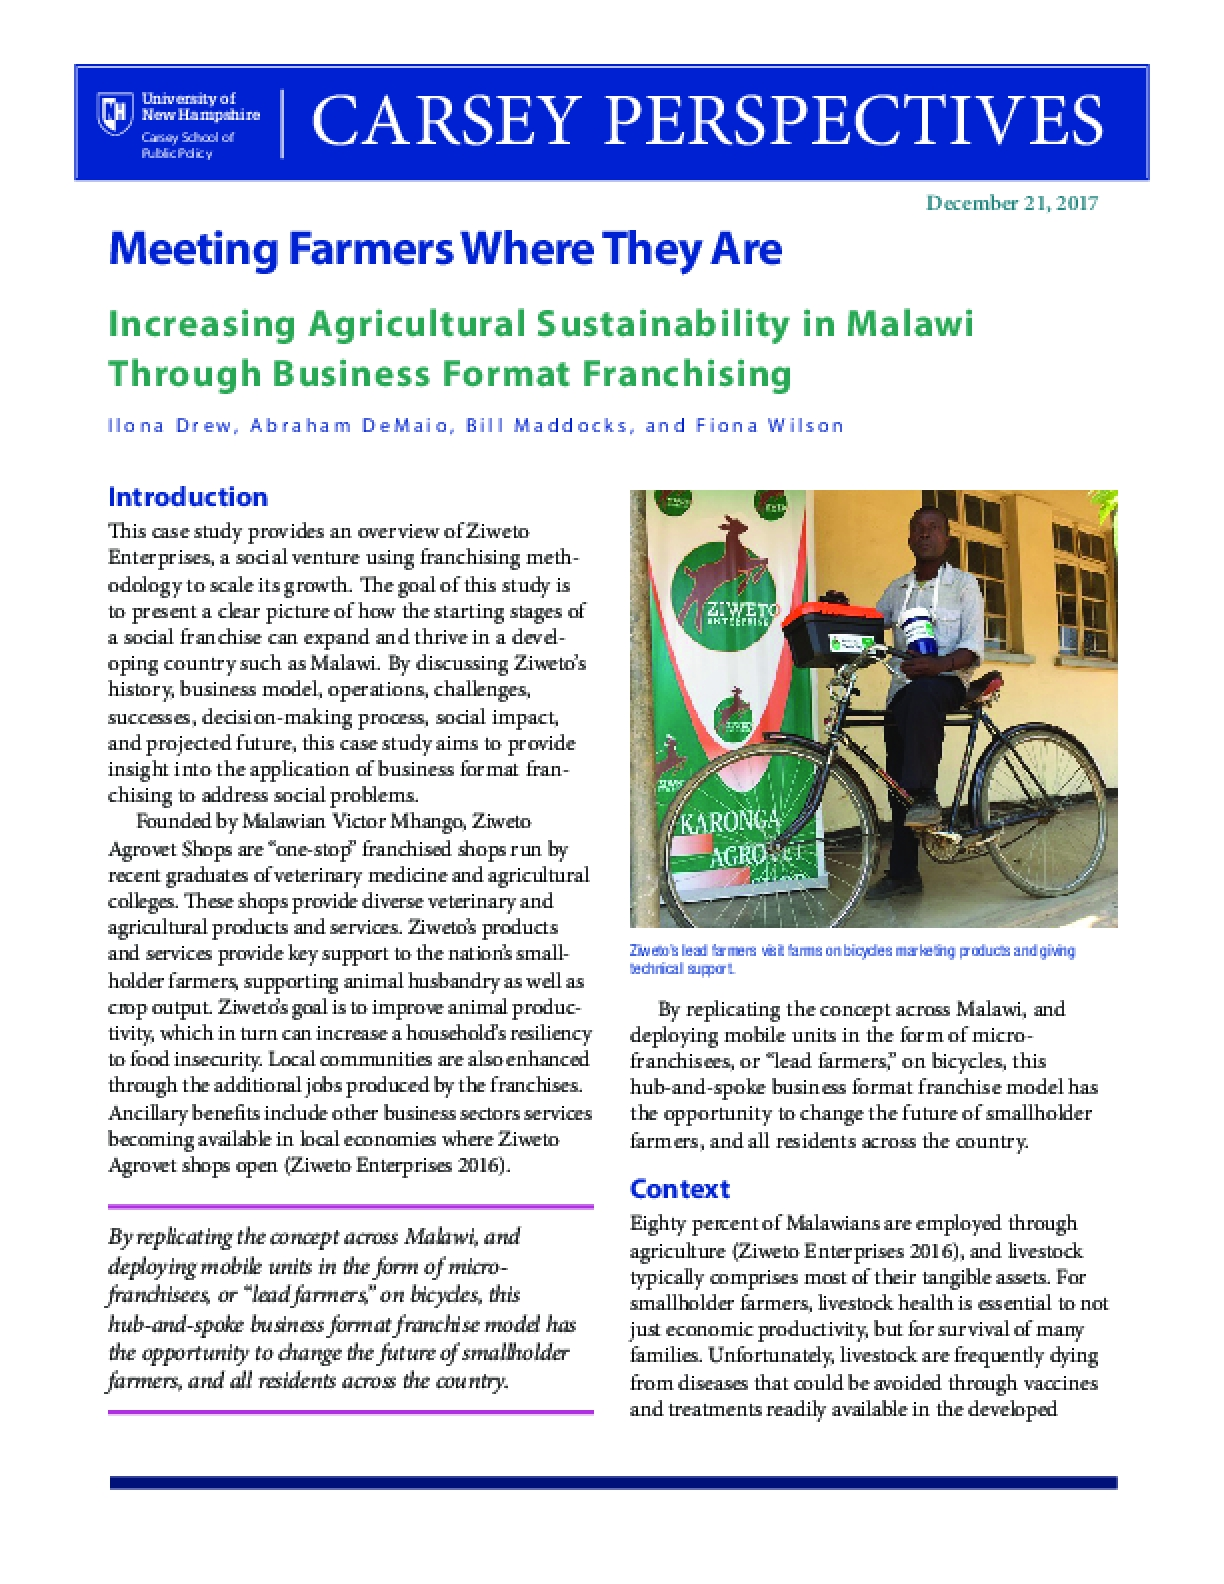 Carsey Perspectives: Meeting Farmers Where They Are